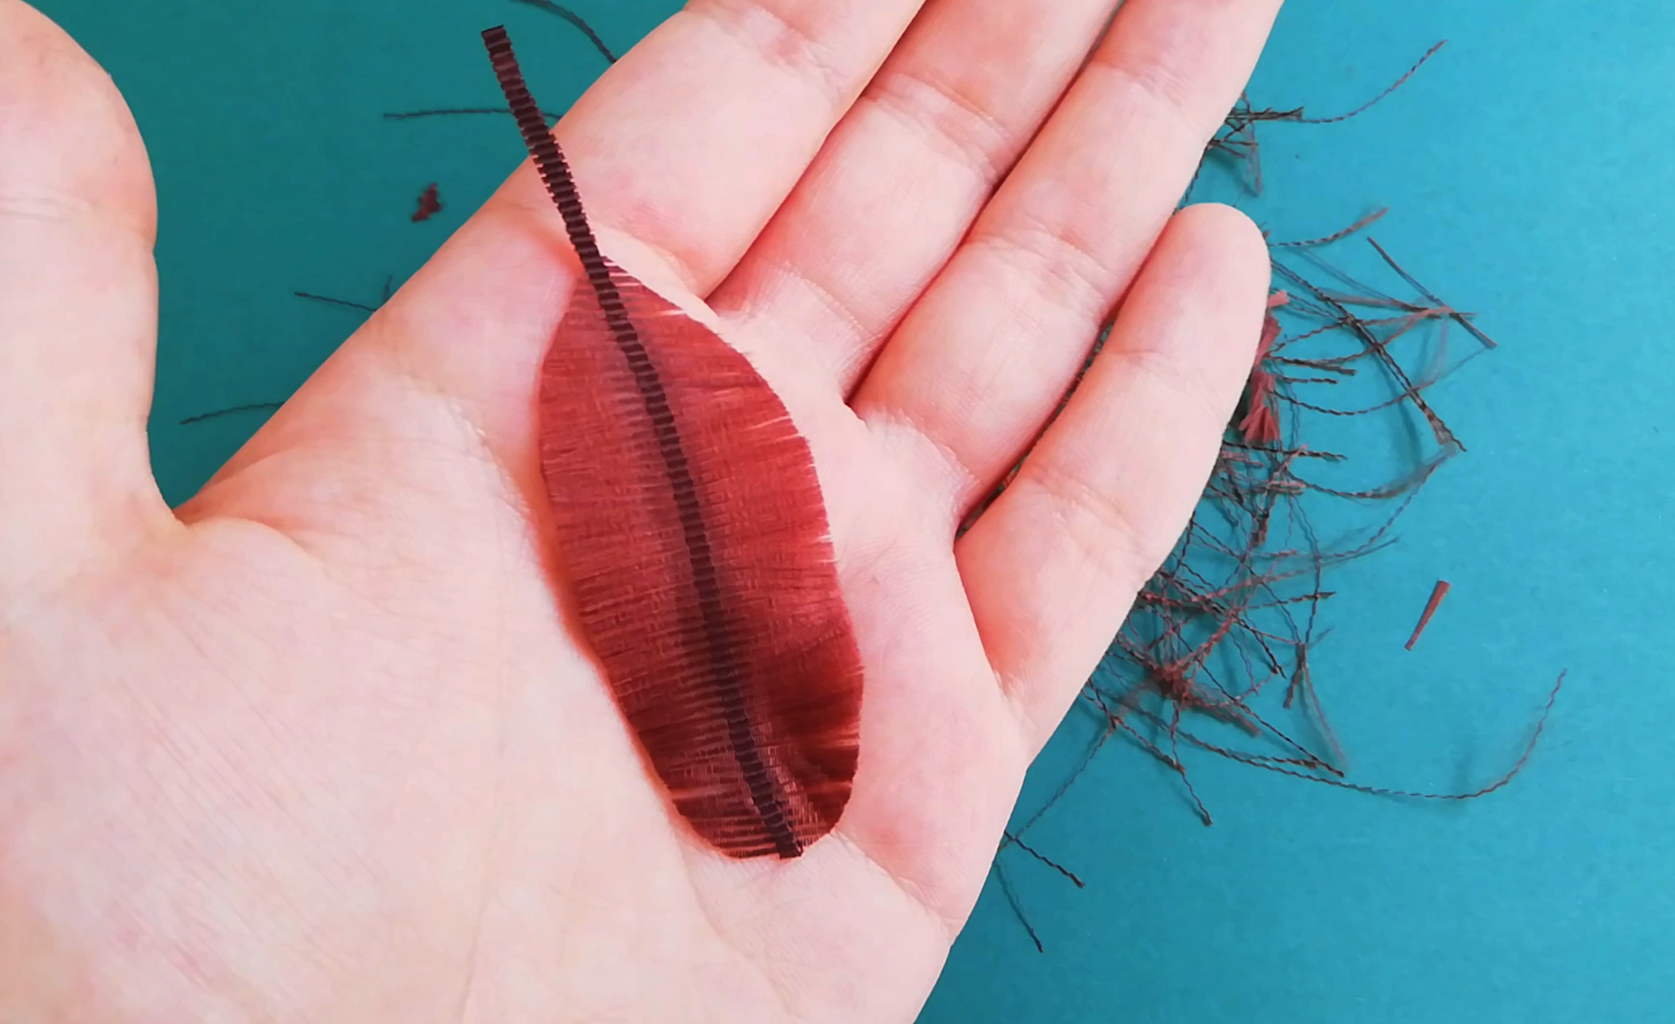 Shaping the Feather